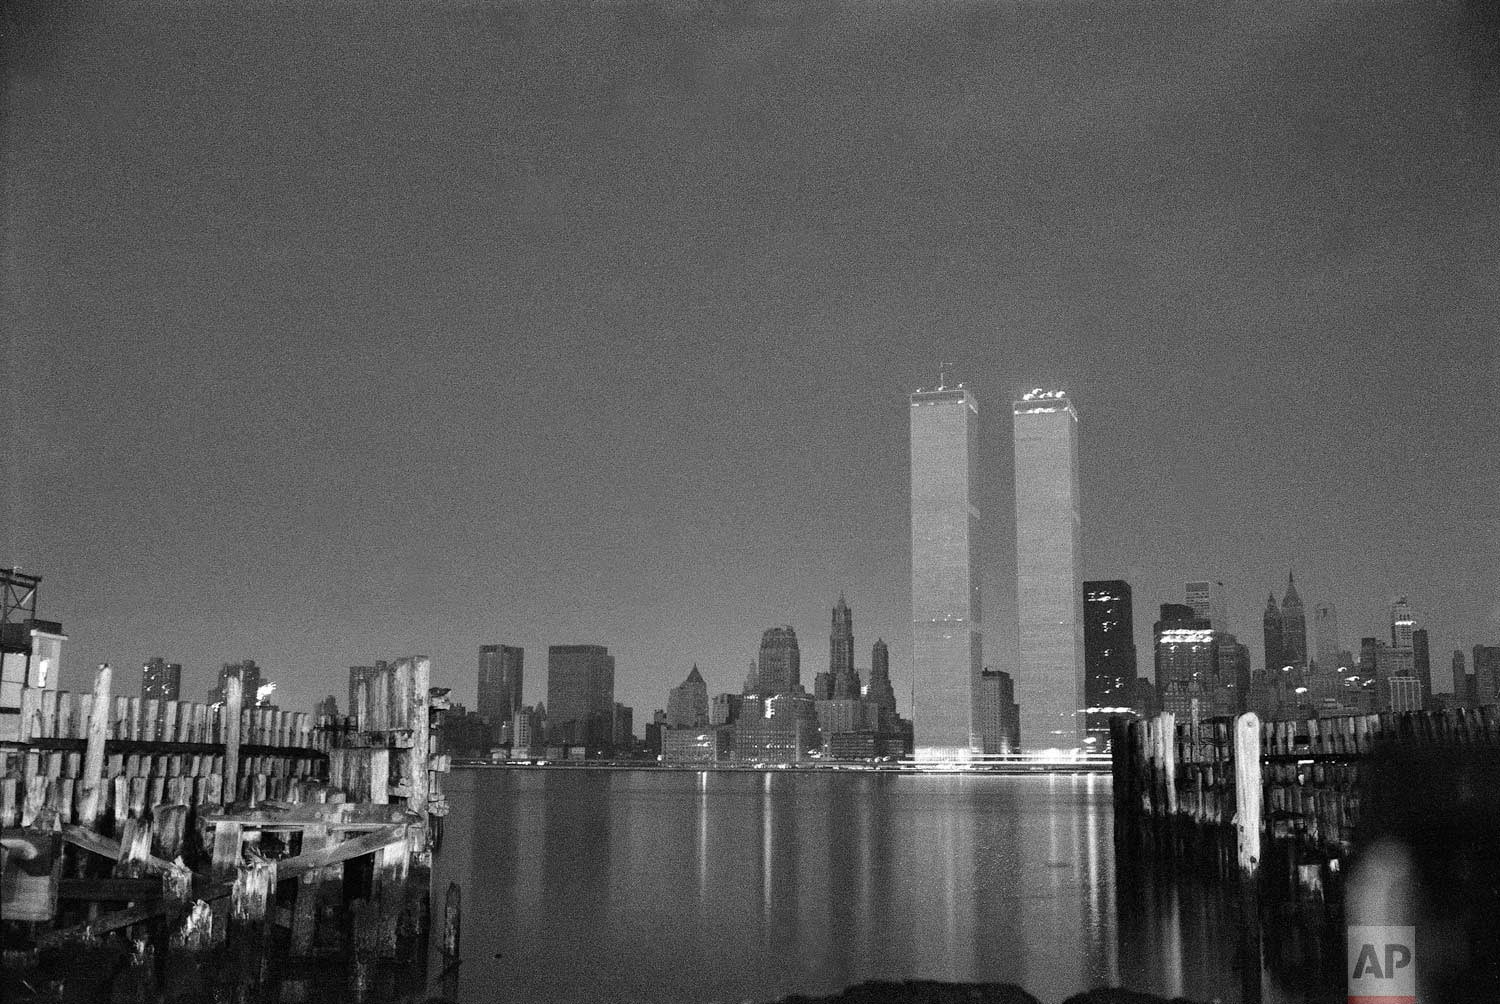 The World Trade Center stands out against a blackened New York City skyline after a power failure struck the city, July 14, 1977. Lightning striking a power station is blamed for the blackout.  (AP Photo/Lennox McLendon)